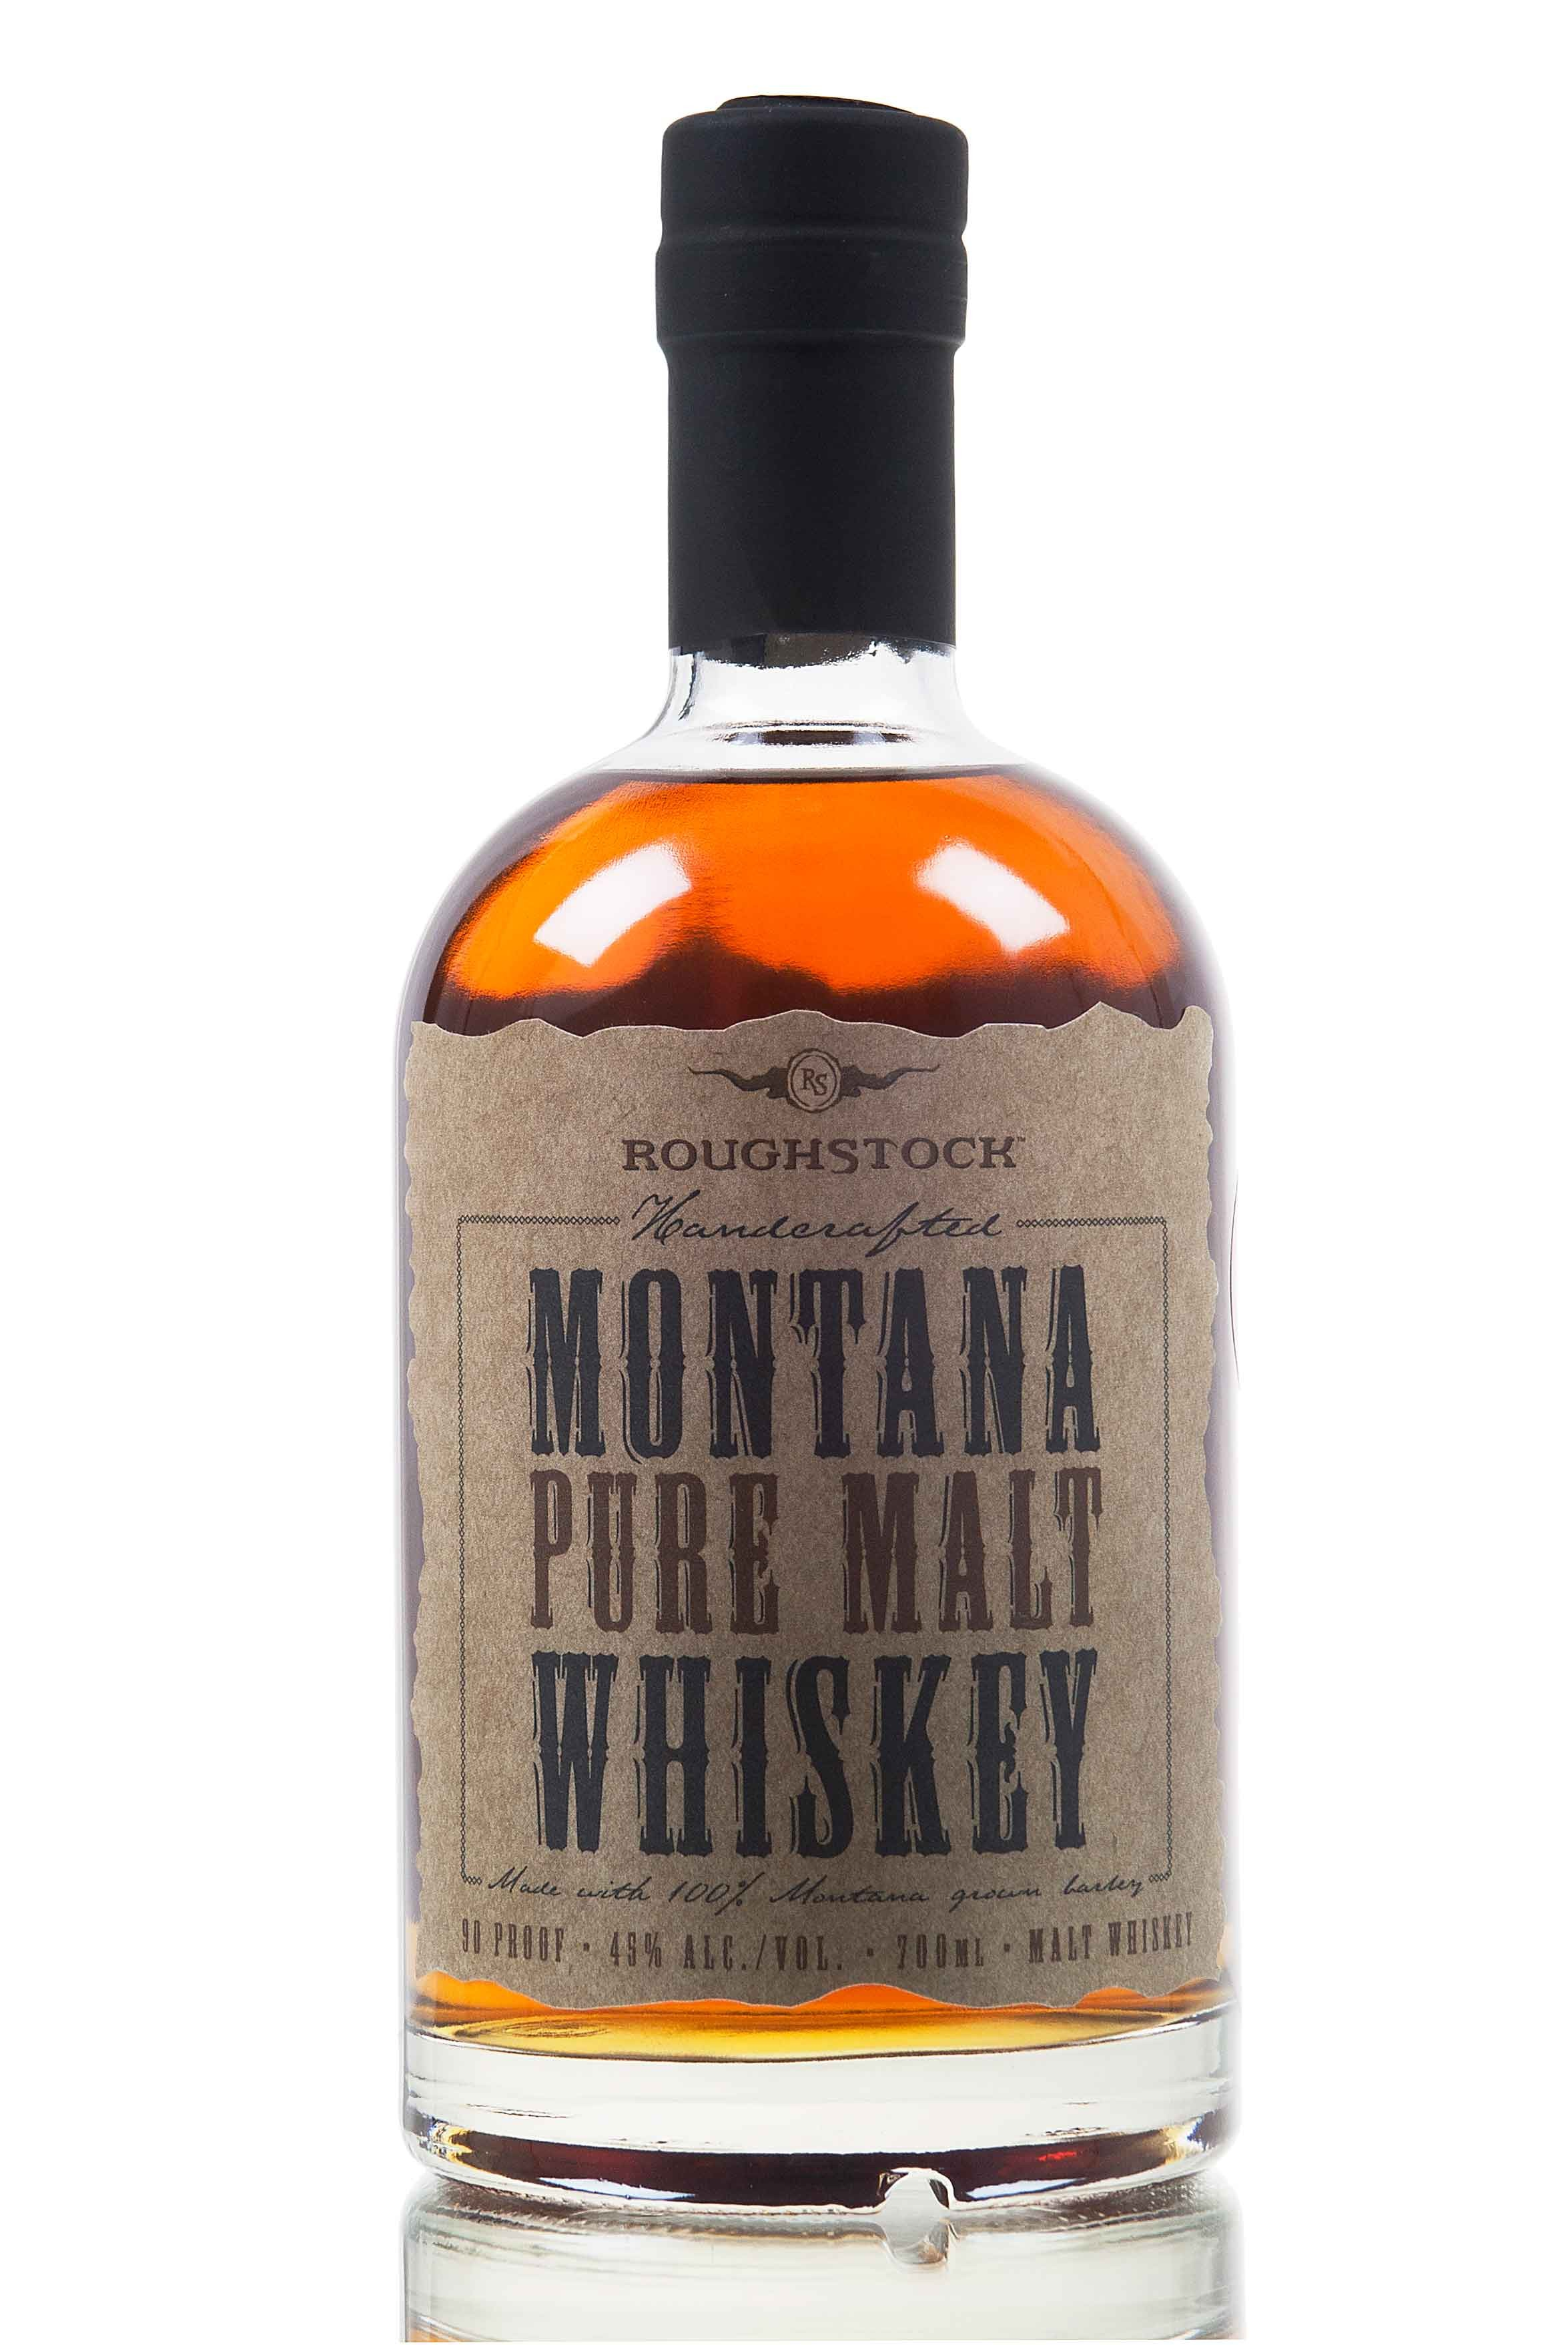 roughstock montana whiskey pure malt